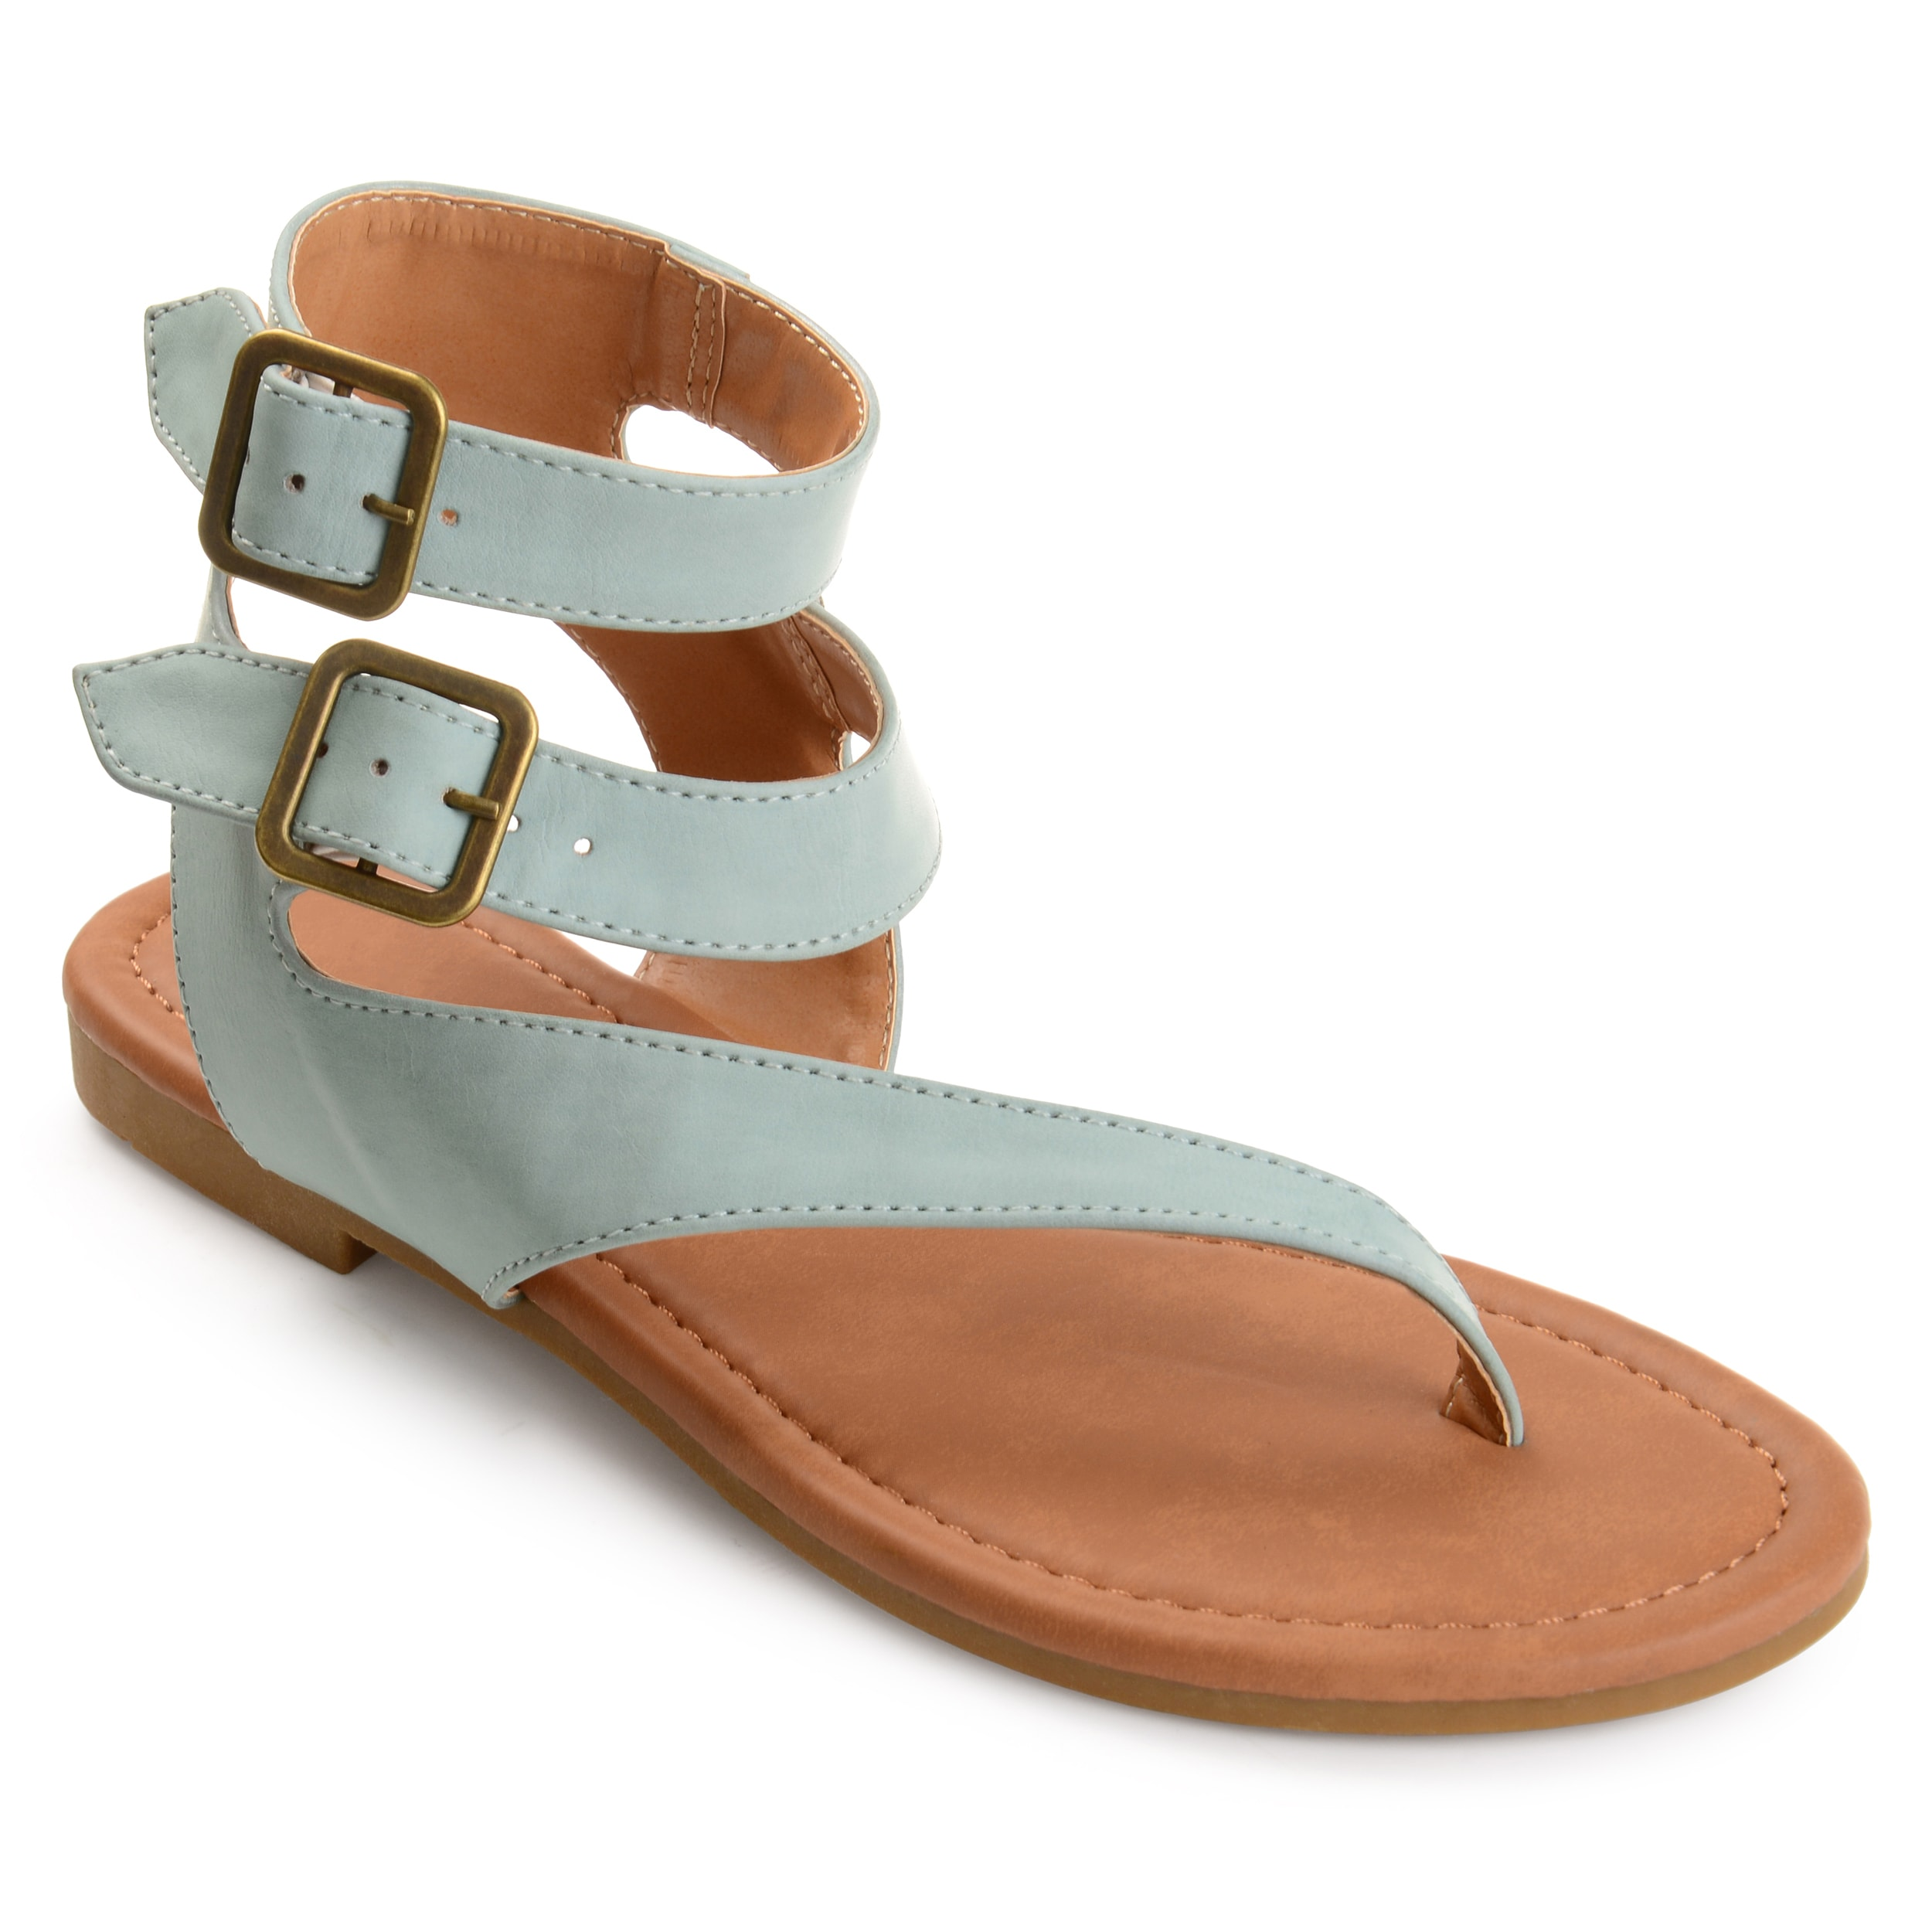 f07b35d4b75a0 Buy Size 10 Women s Sandals Online at Overstock